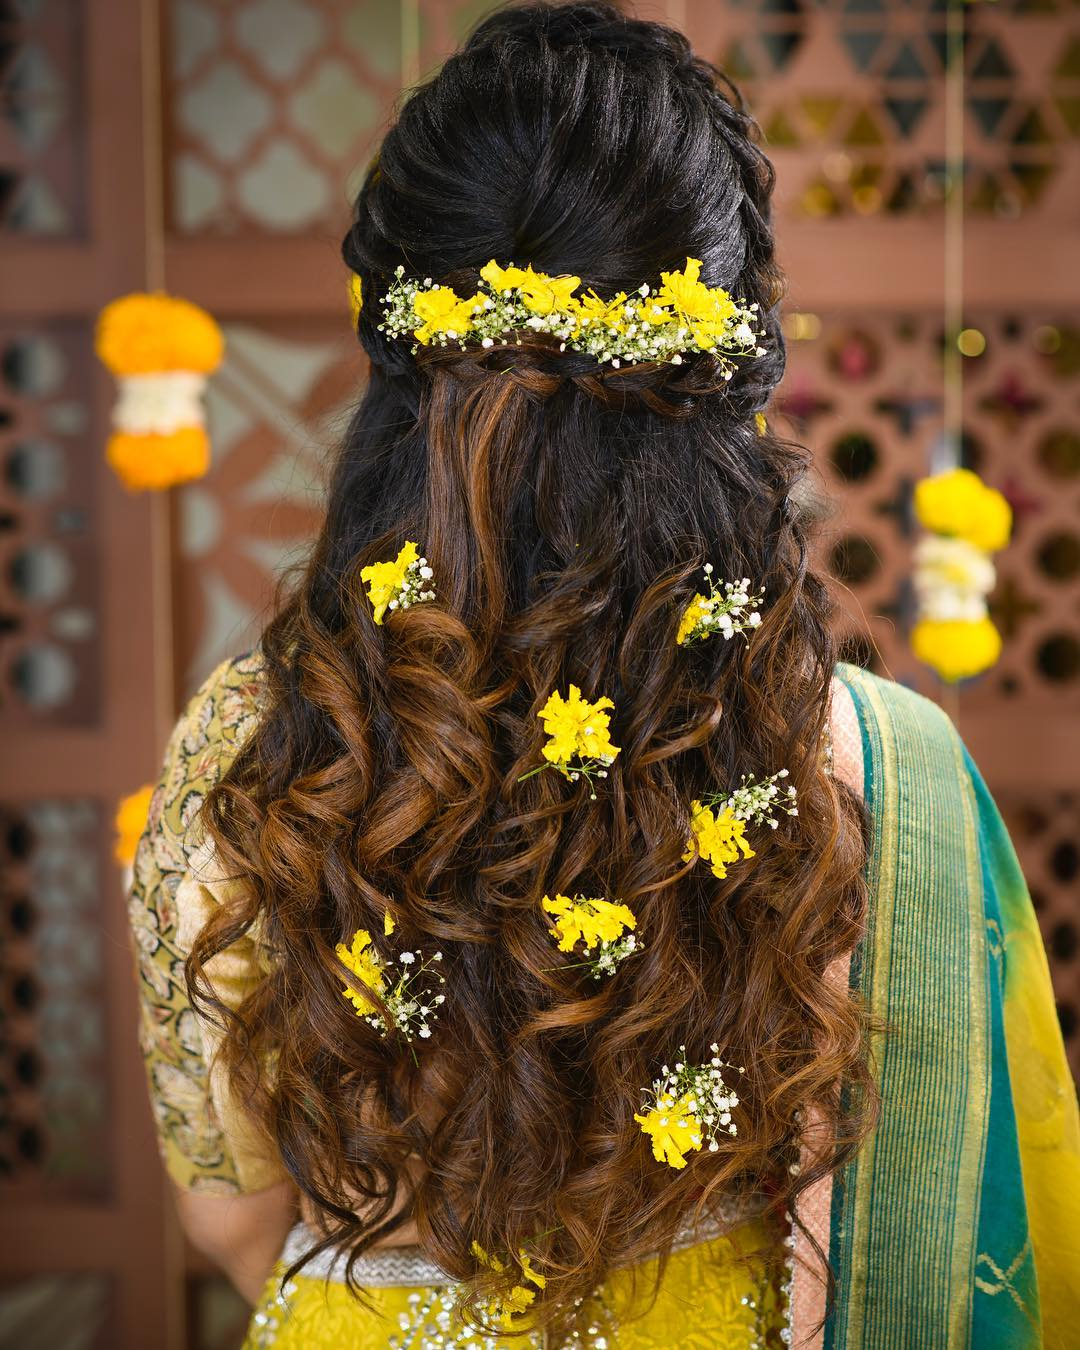 Floral hairstyles for Haldi: Floral hairstyles for Haldi and Mehendi Ceremonies!a